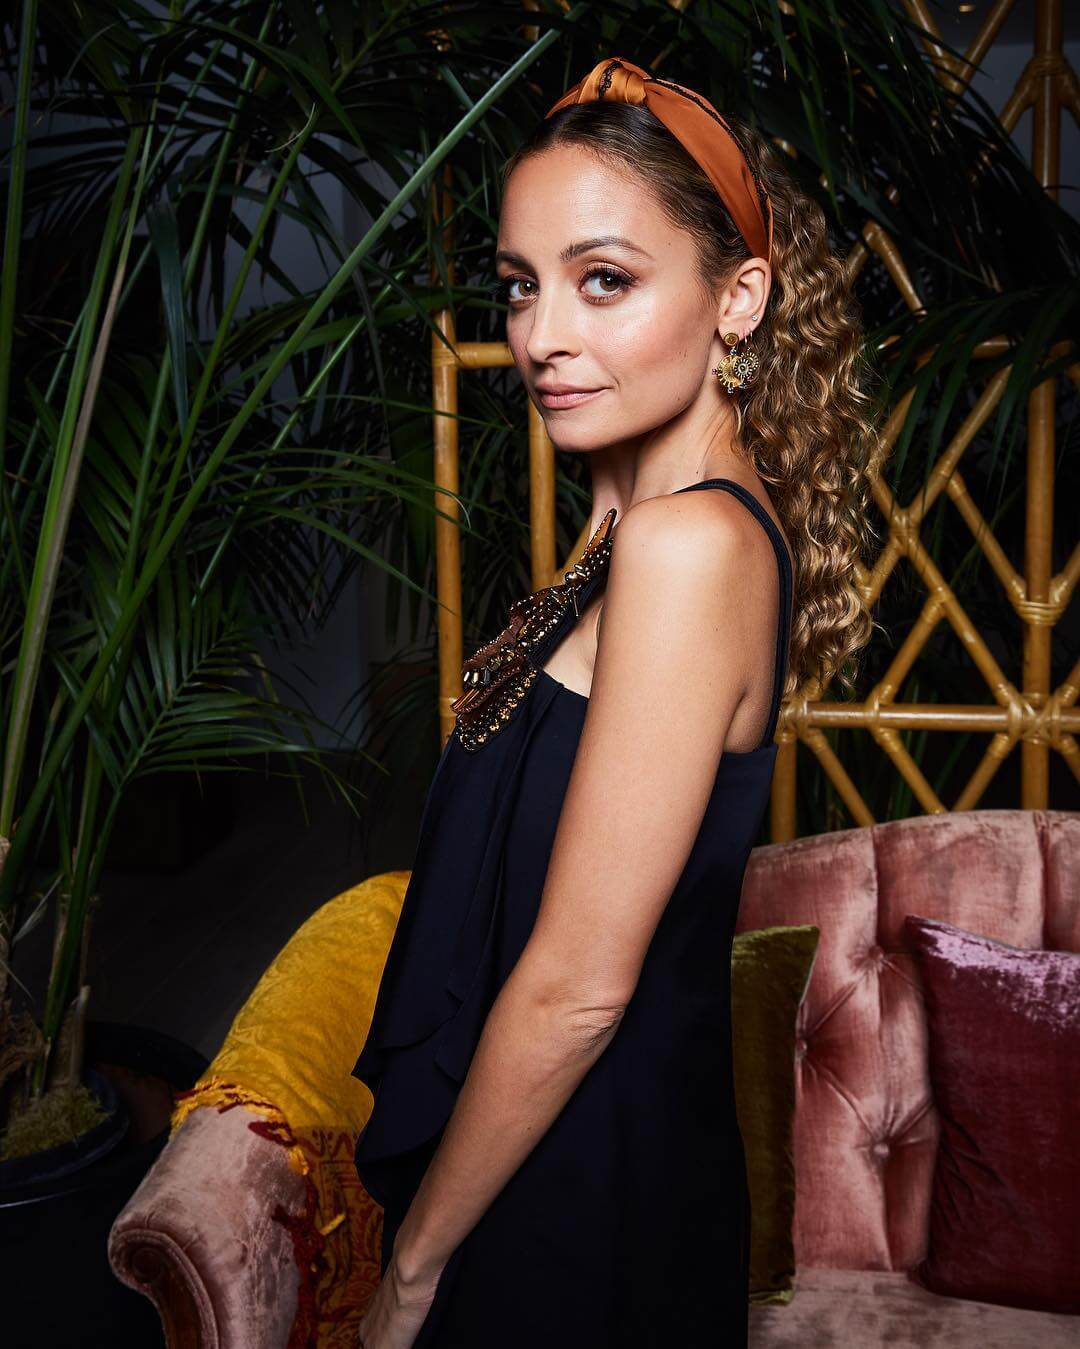 49 hot Nicole Richie photos that will make you want her